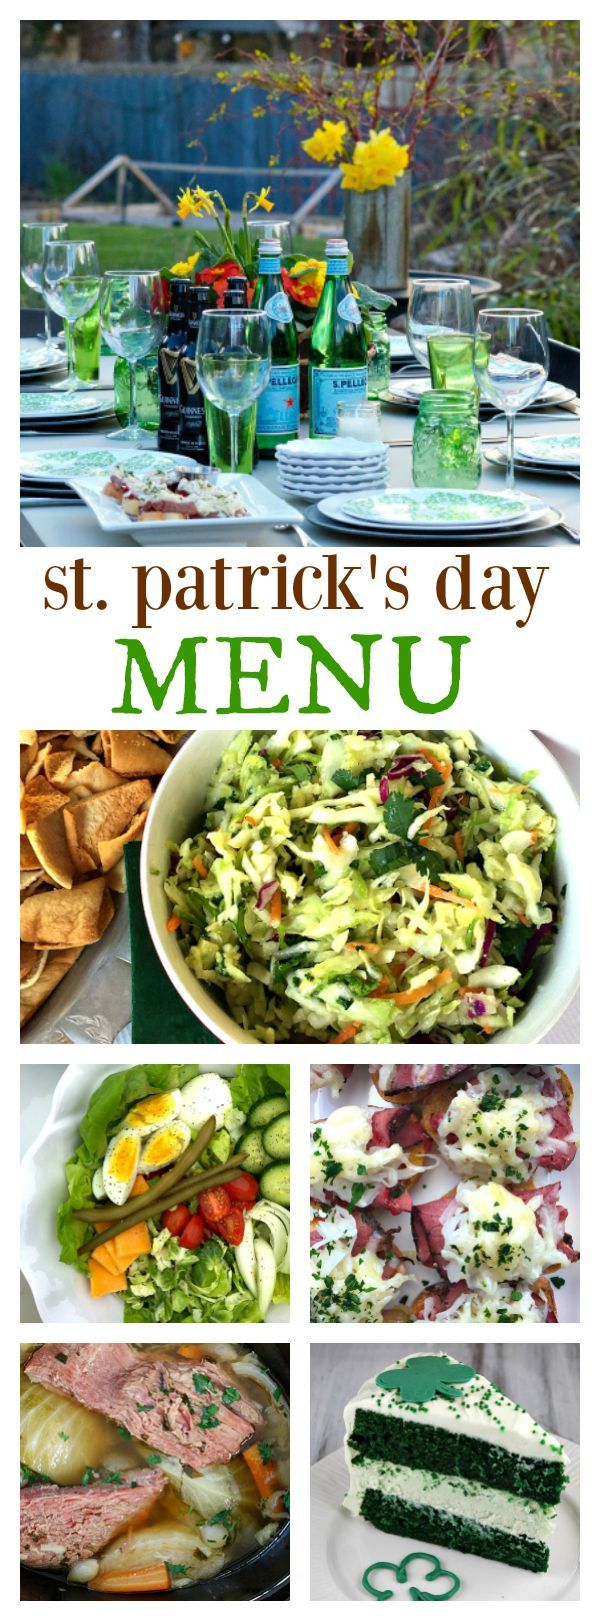 St. Patrick's Day Menu - everything you need to plan a fun St. Patrick's Day party with full menu of appetizers, salad, main dish, and dessert at Reluctant Entertainer